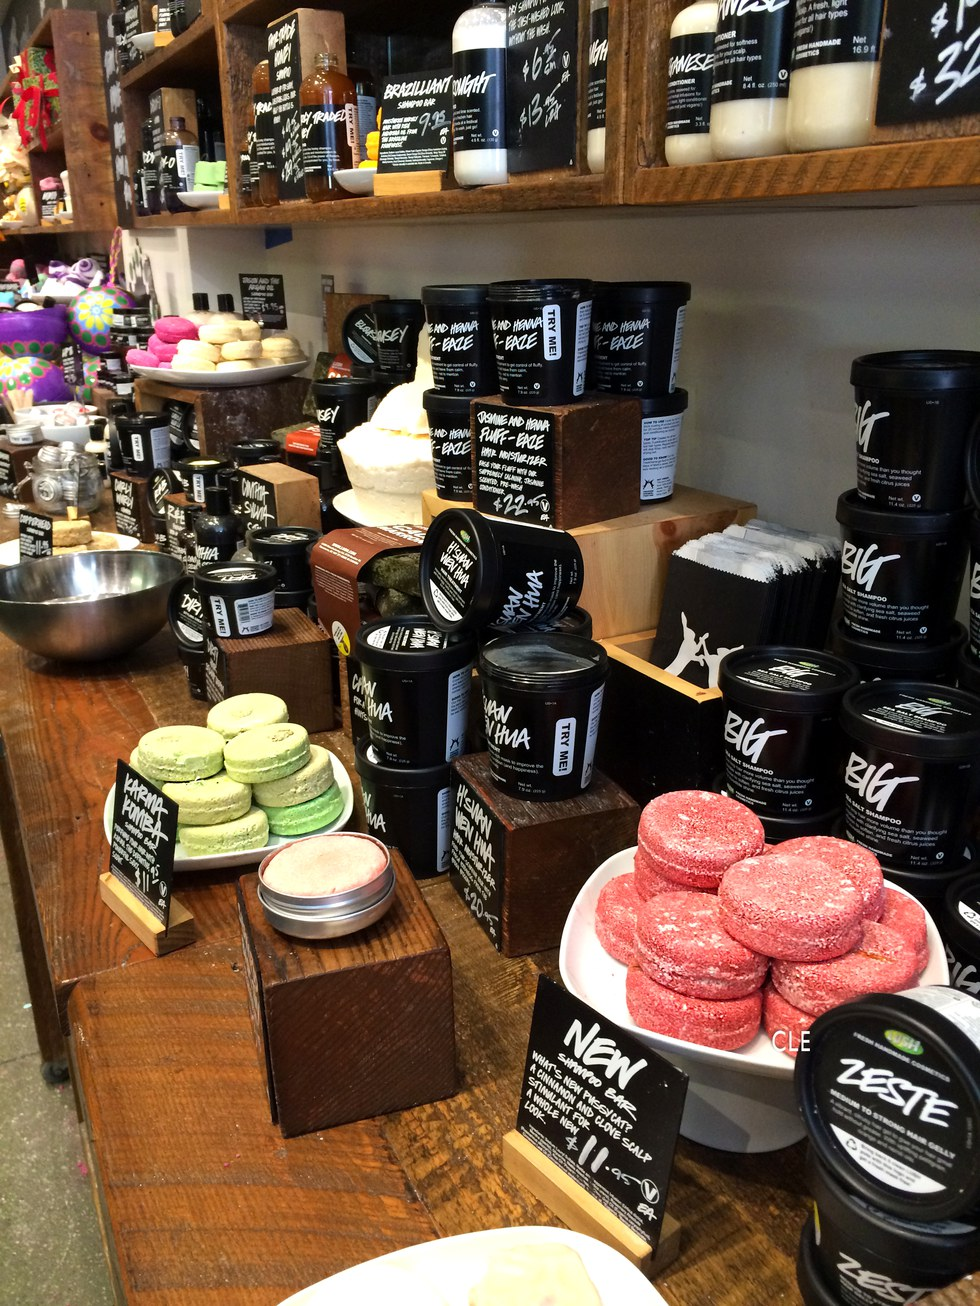 Secrets Lush Employees Will Never Tell You - YouTube